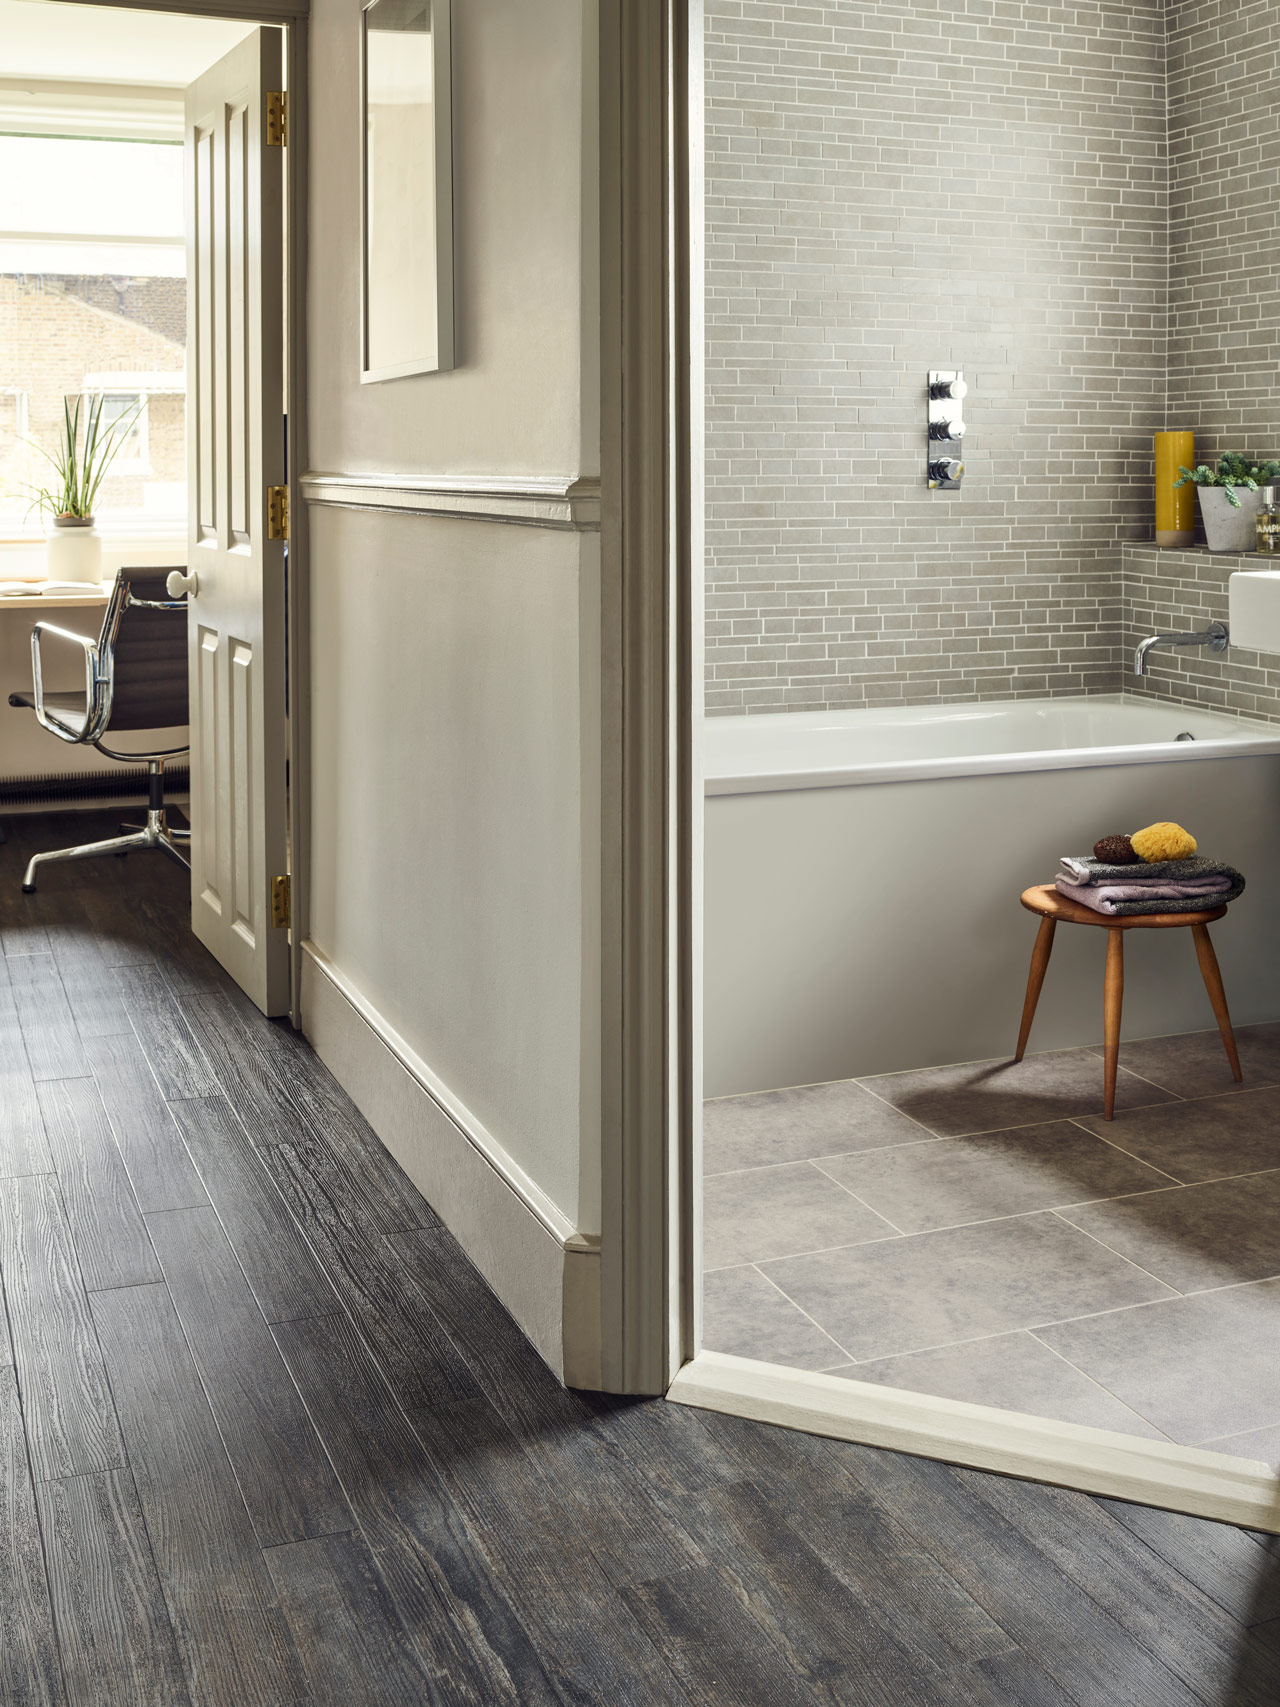 Hallway: Amtico Spacia Blackened Spa Wood (SS5S3069) in a Stripwood laying pattern. Bathroom: Amtico Spacia Century Concrete (SS5S3069) with Concrete Pale stripping in Broken Bond laying pattern